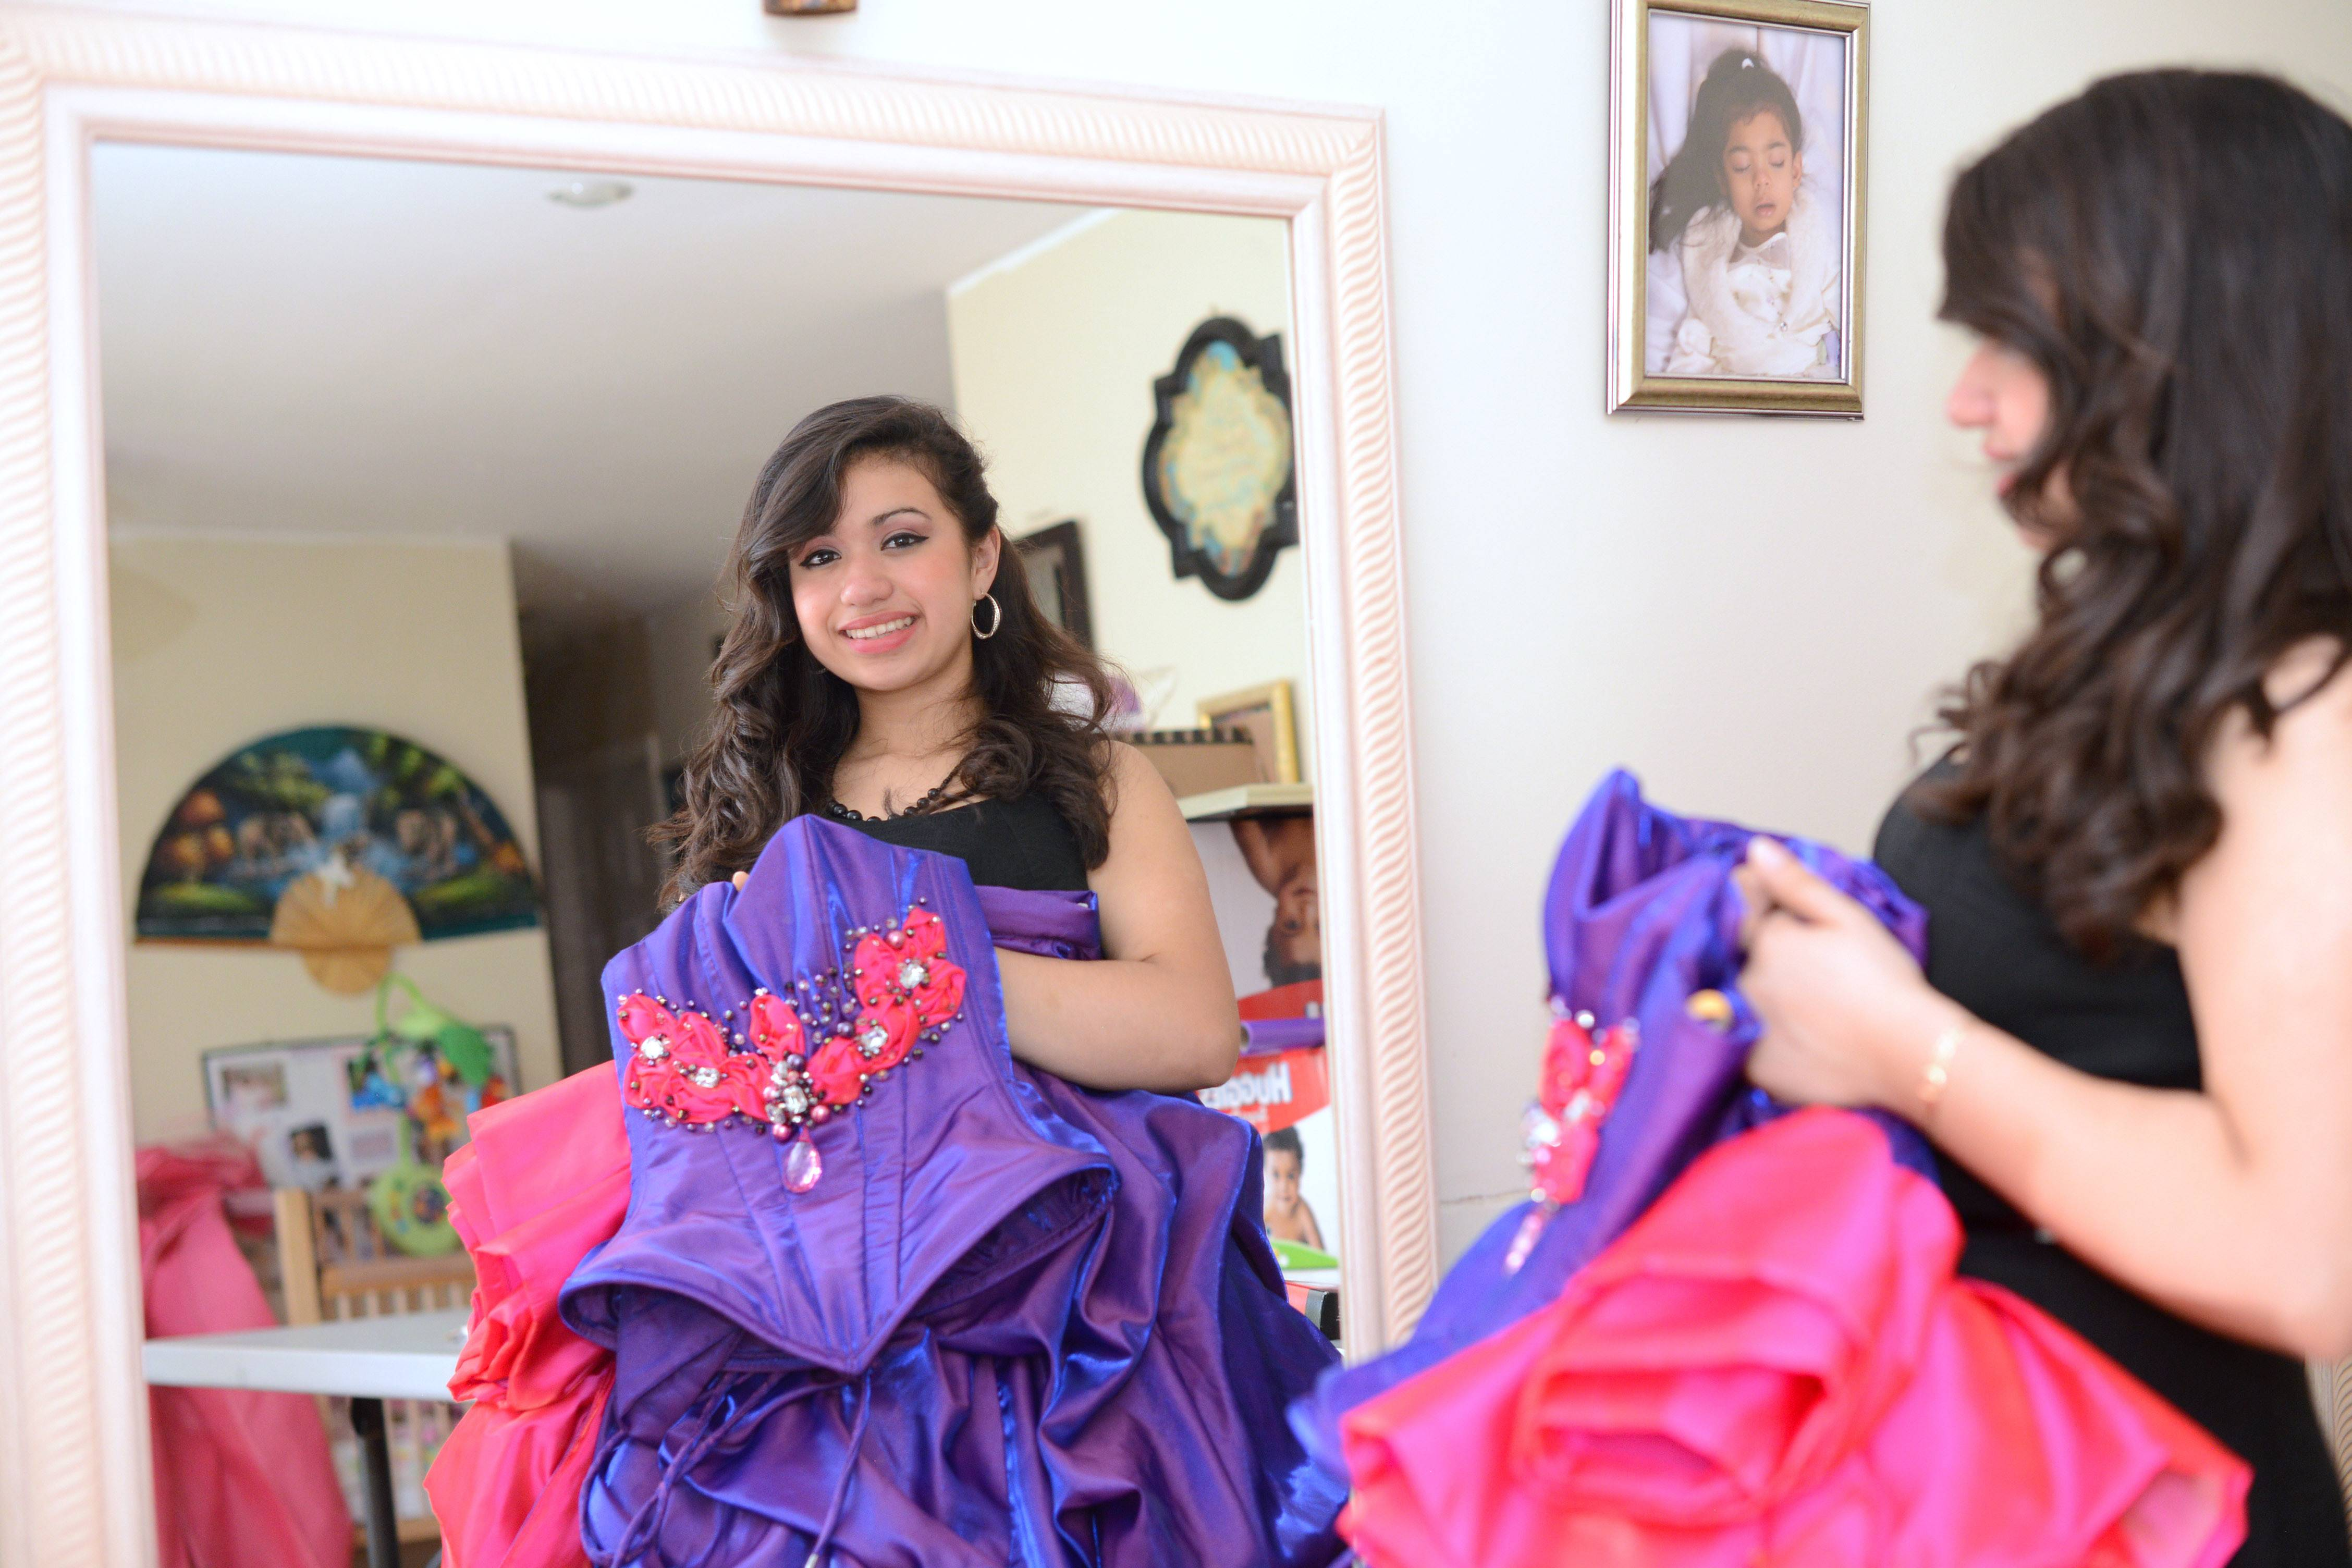 Bianca Huerta, 15, of Carpentersville shows the quinceañera dress that her mother, Brandy, won for her through a Facebook contest. It's one of many prizes her mother won for her daughter.